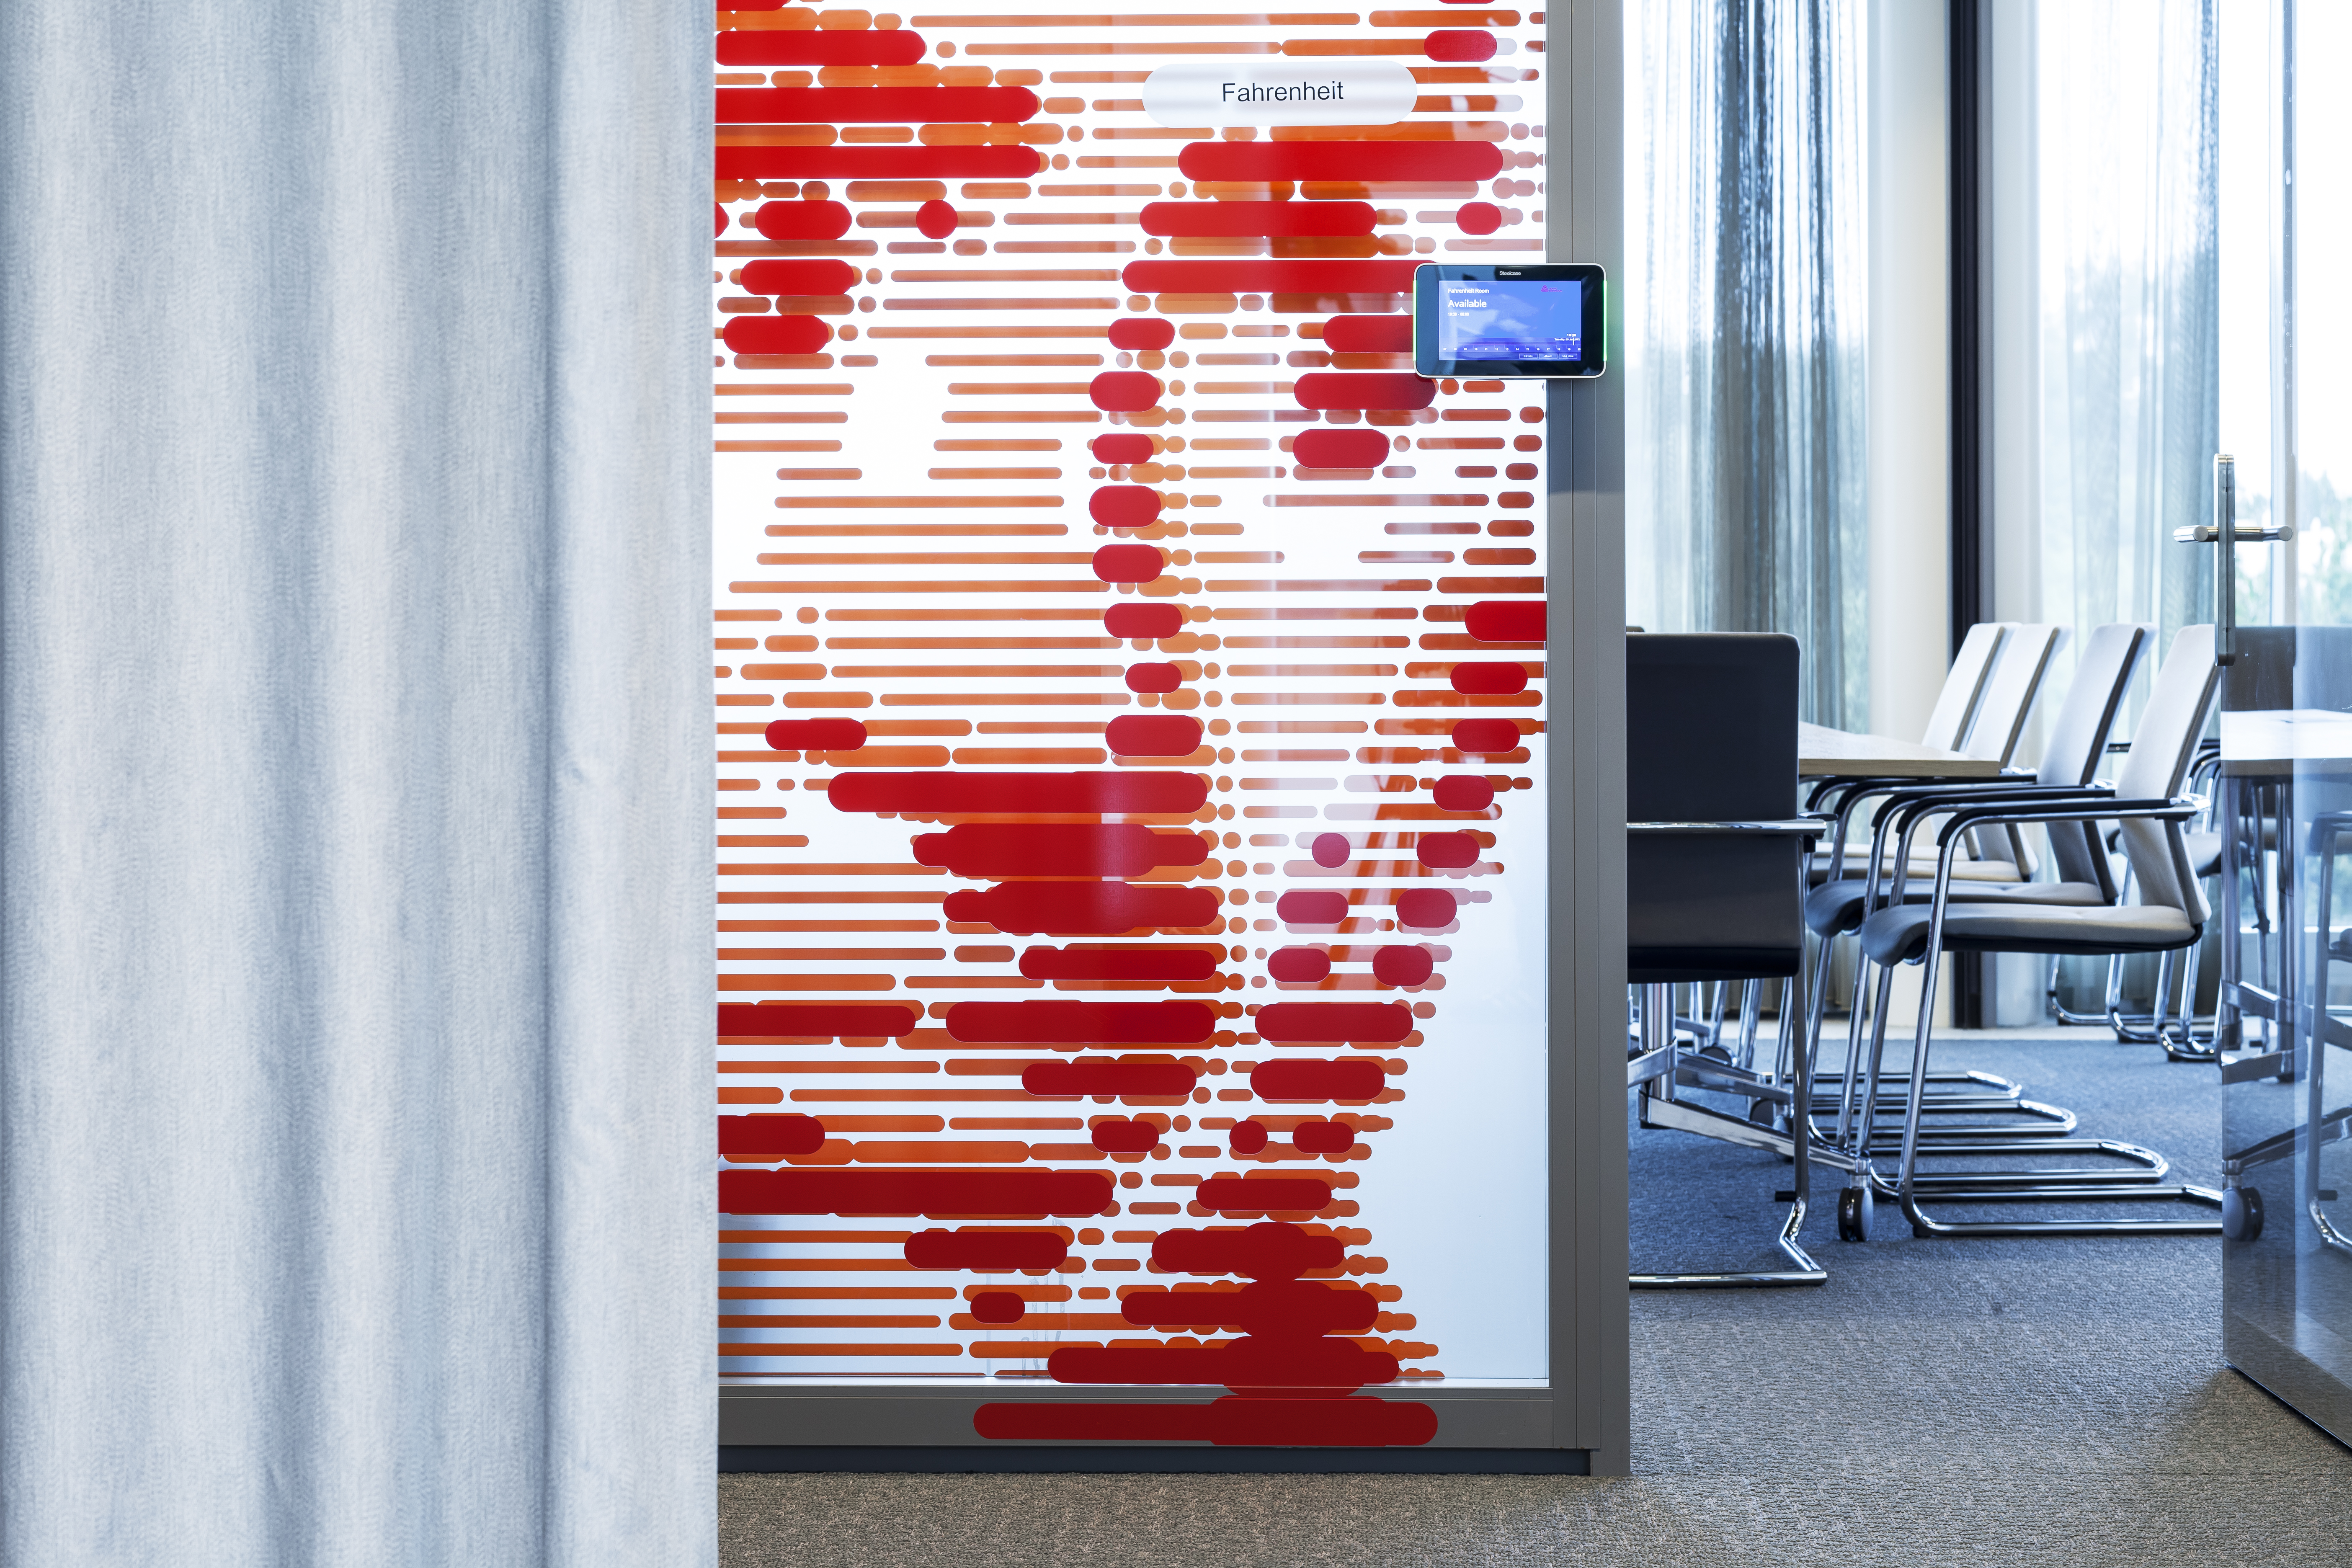 Glass door of conference room with portrait made of layered lines